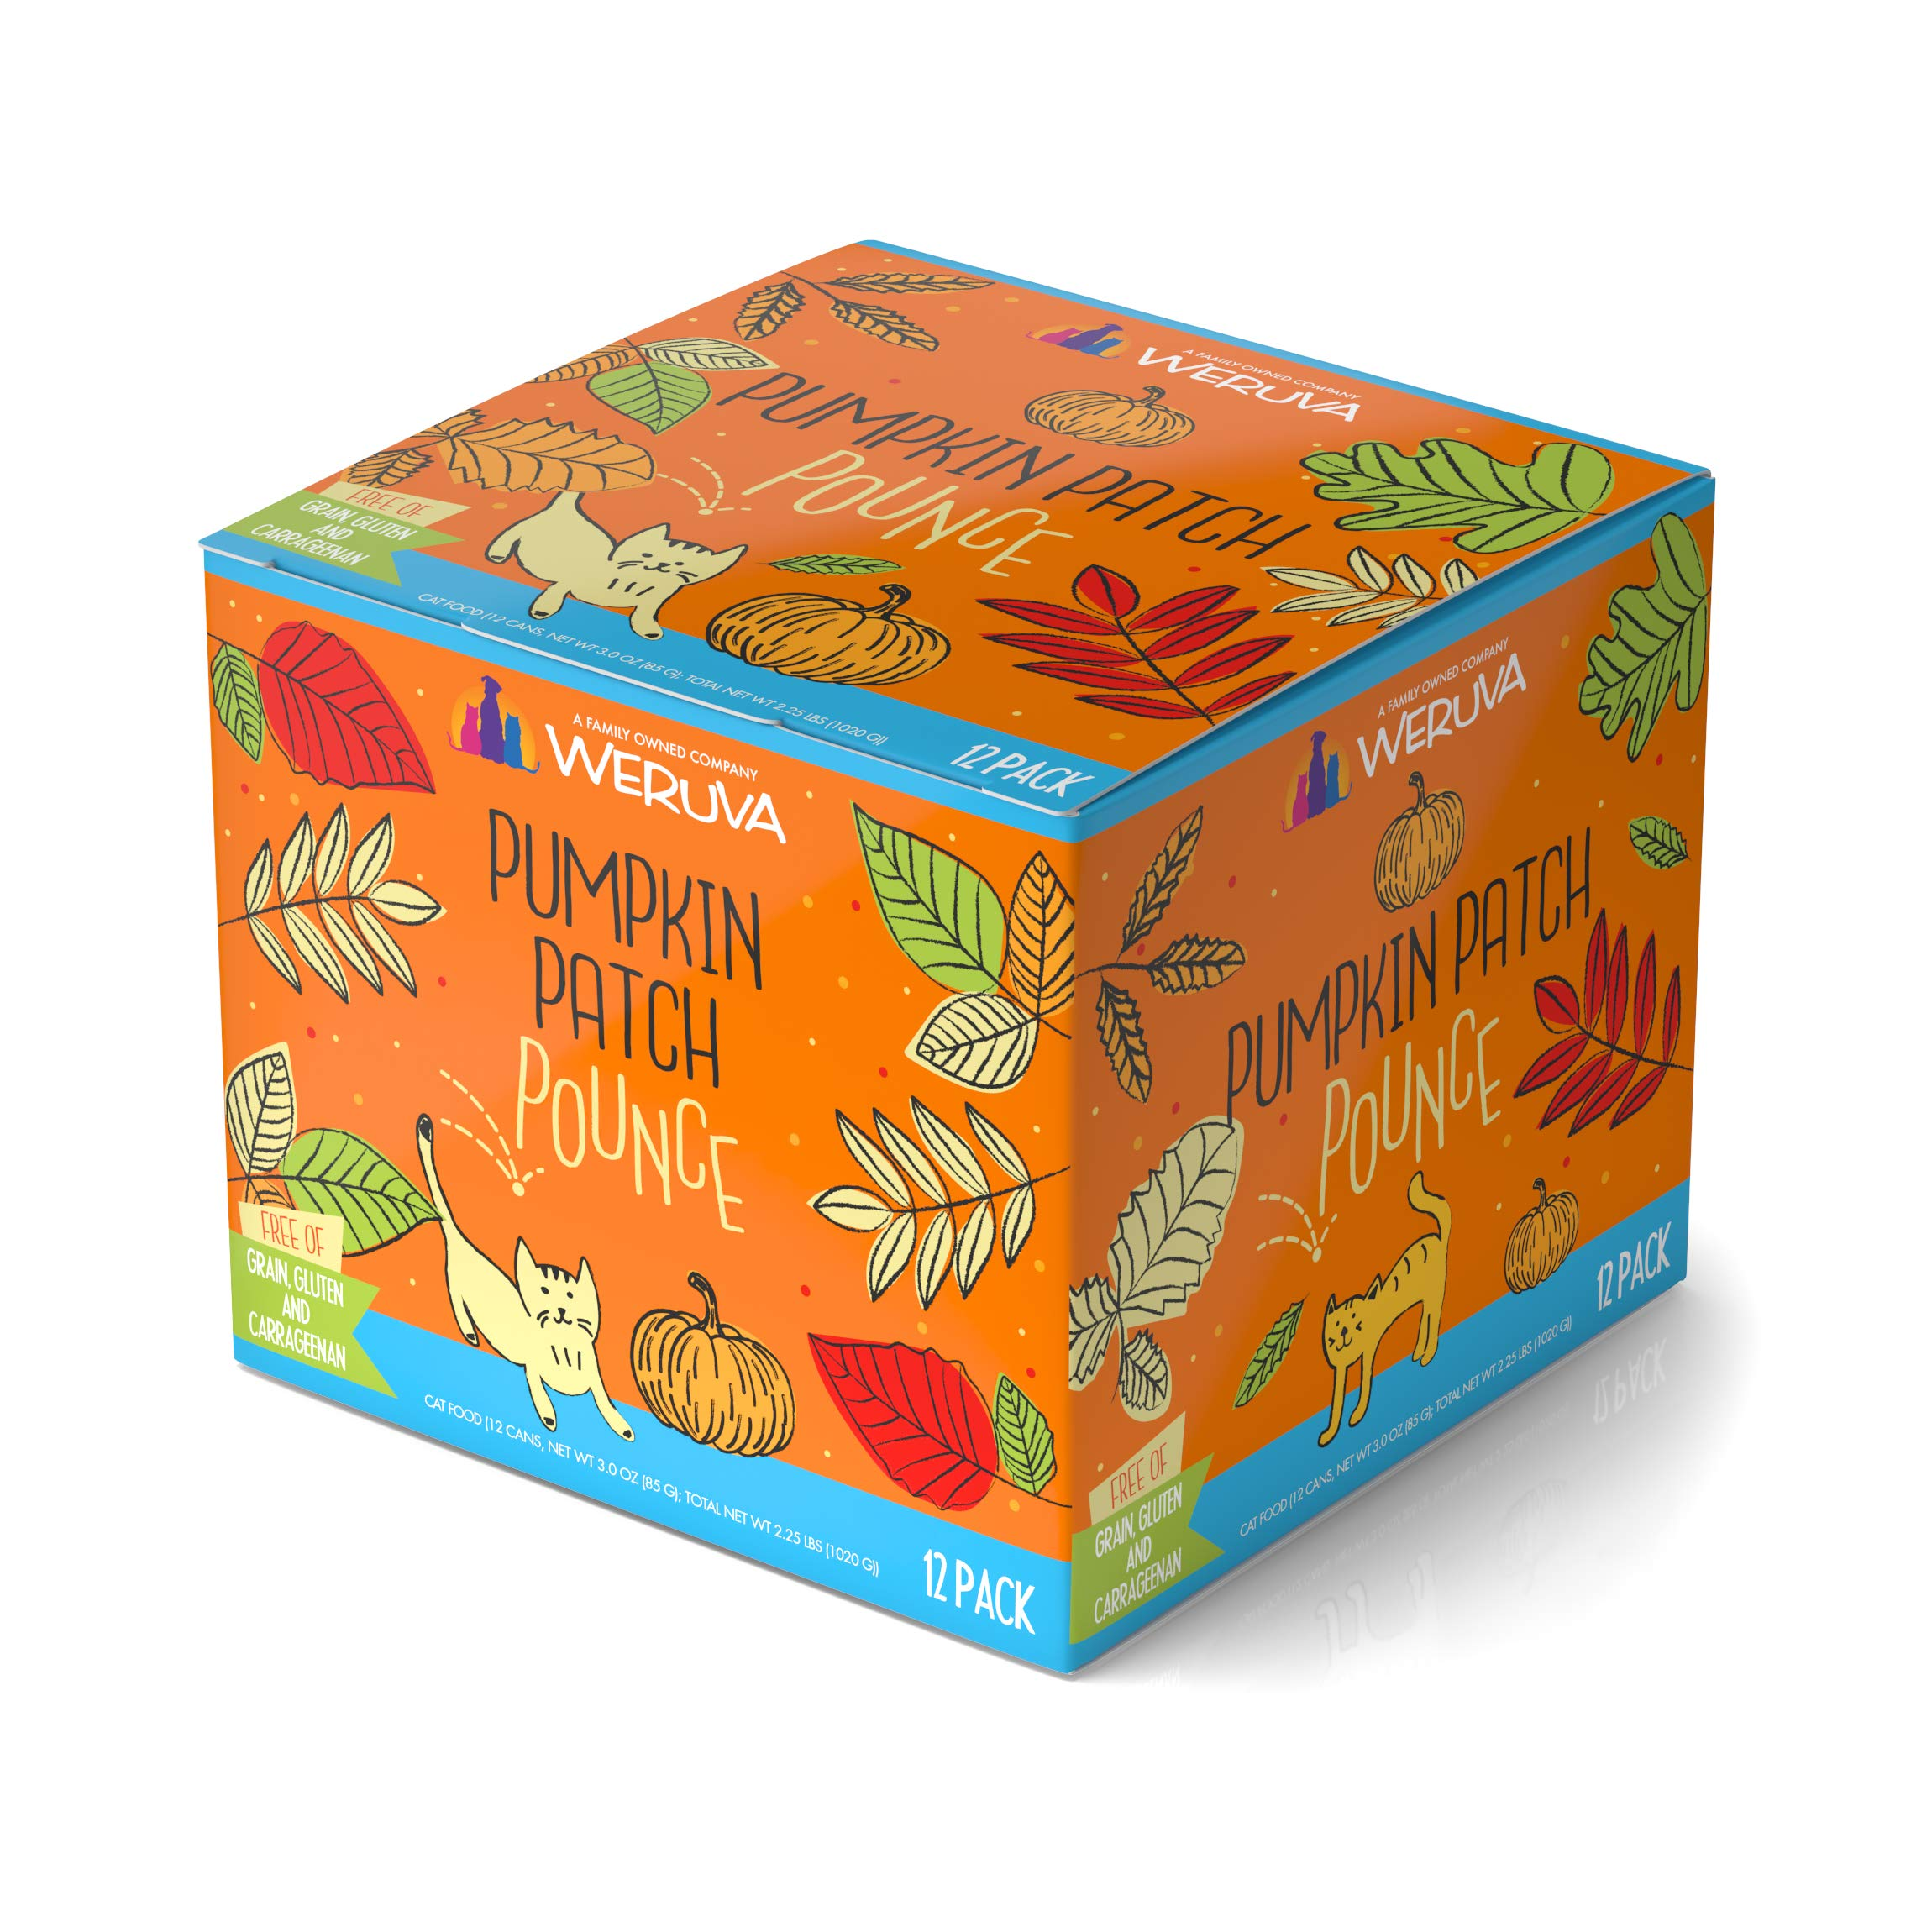 Weruva Classic Cat Food, Pumpkin Patch Pounce Variety Pack, 3oz Can (Pack of 12)